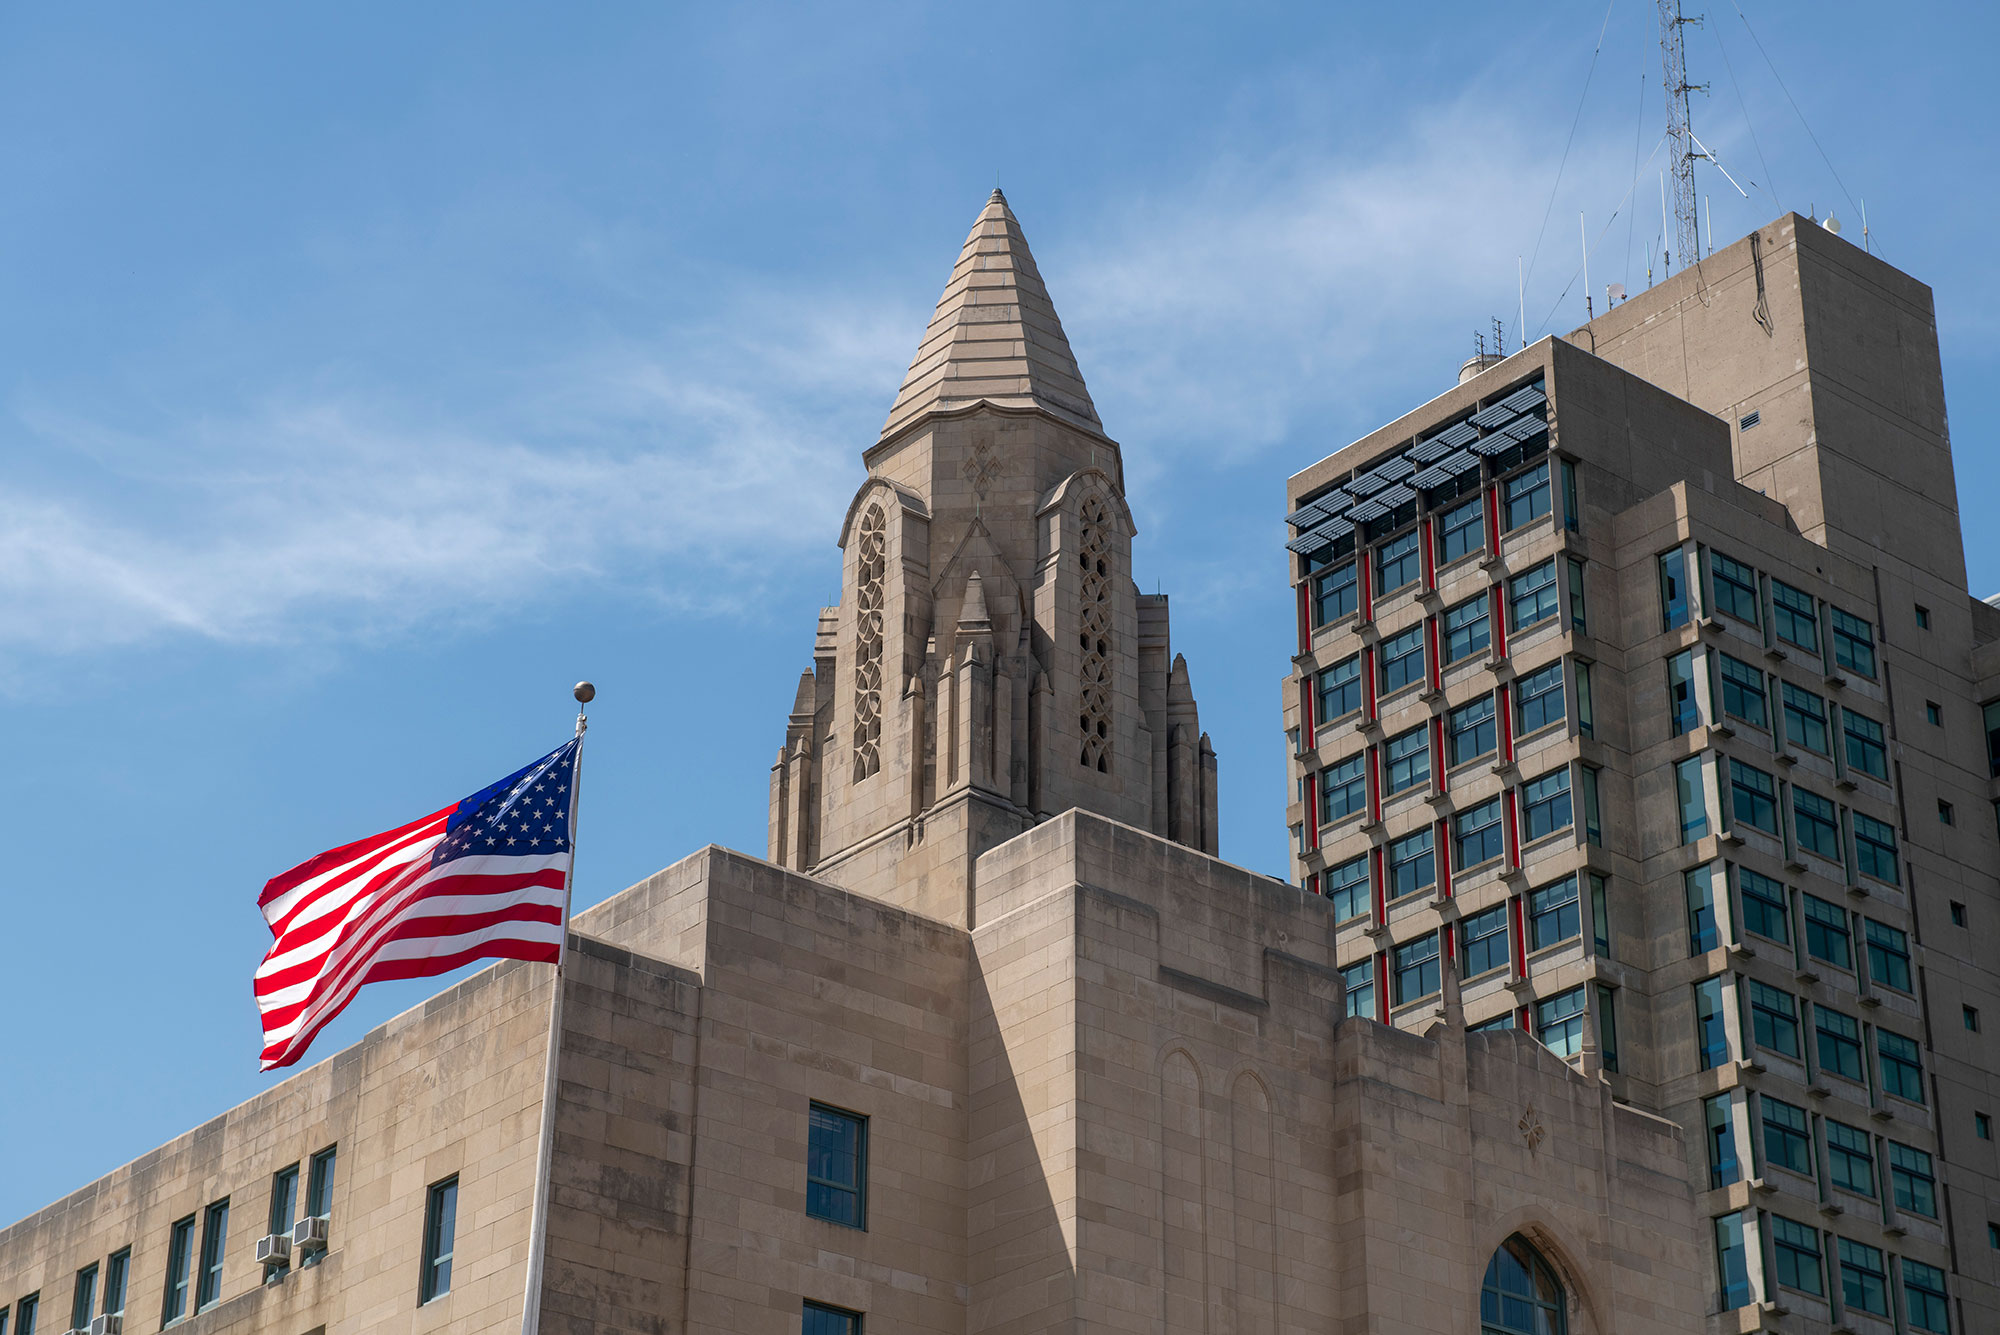 Stock image of Boston University campus on June 7, 2019. School of Law tower and the STH tower with the American flag flying.